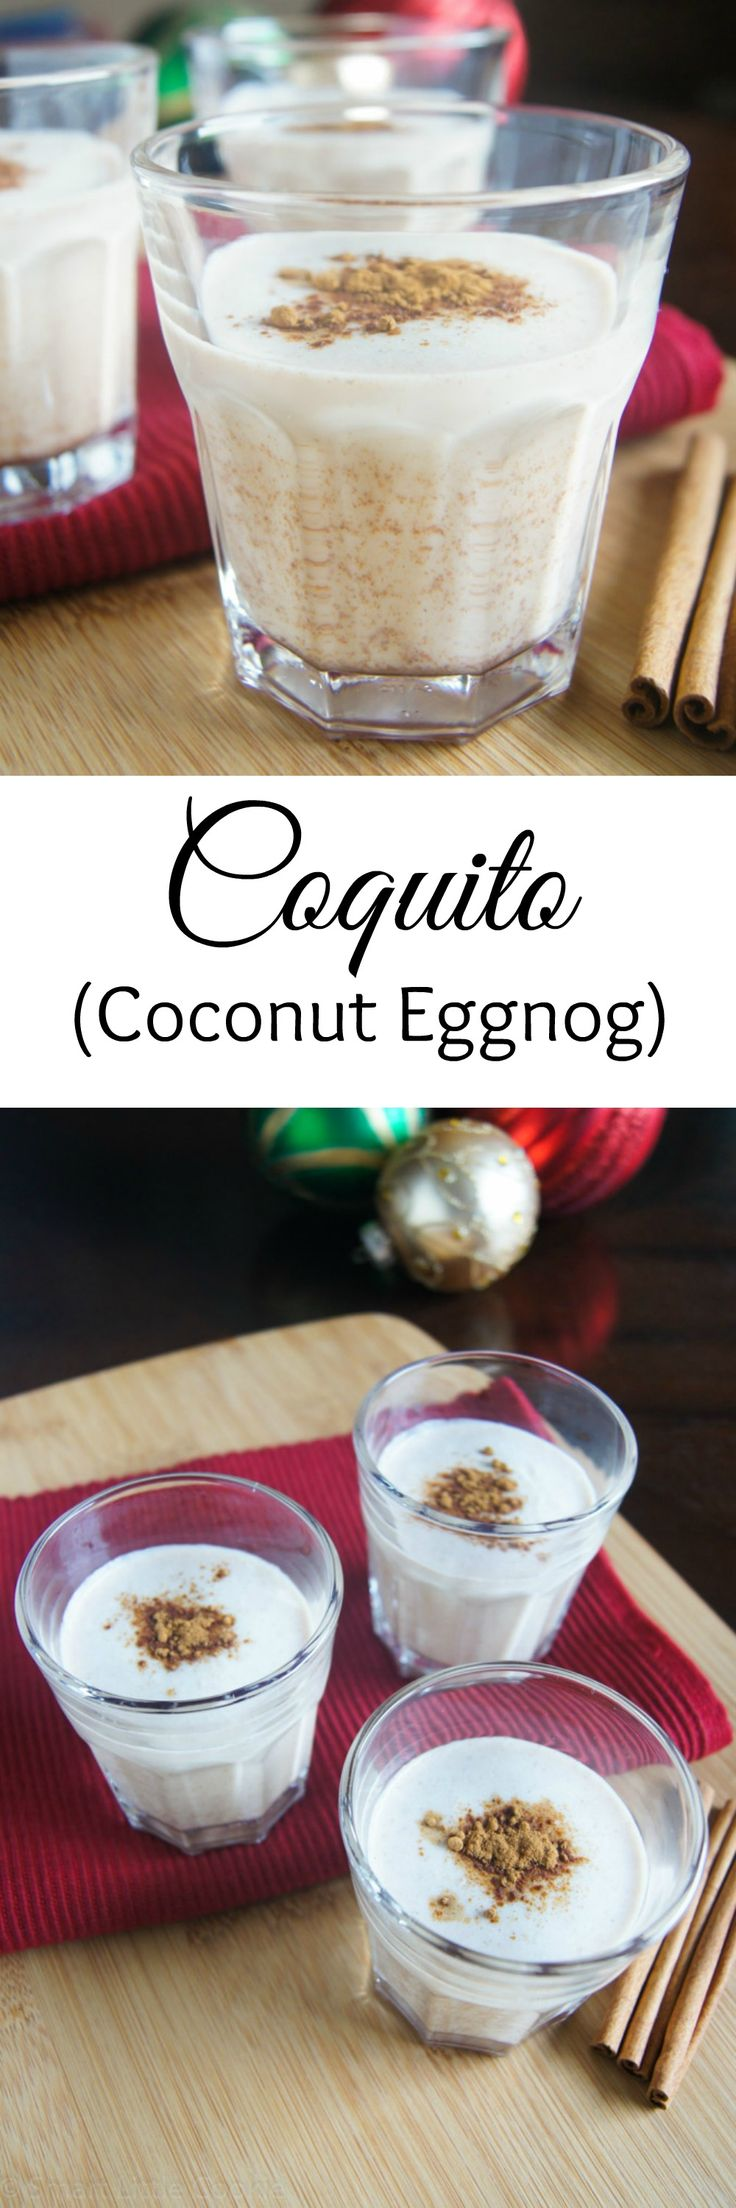 how to make coquito drink